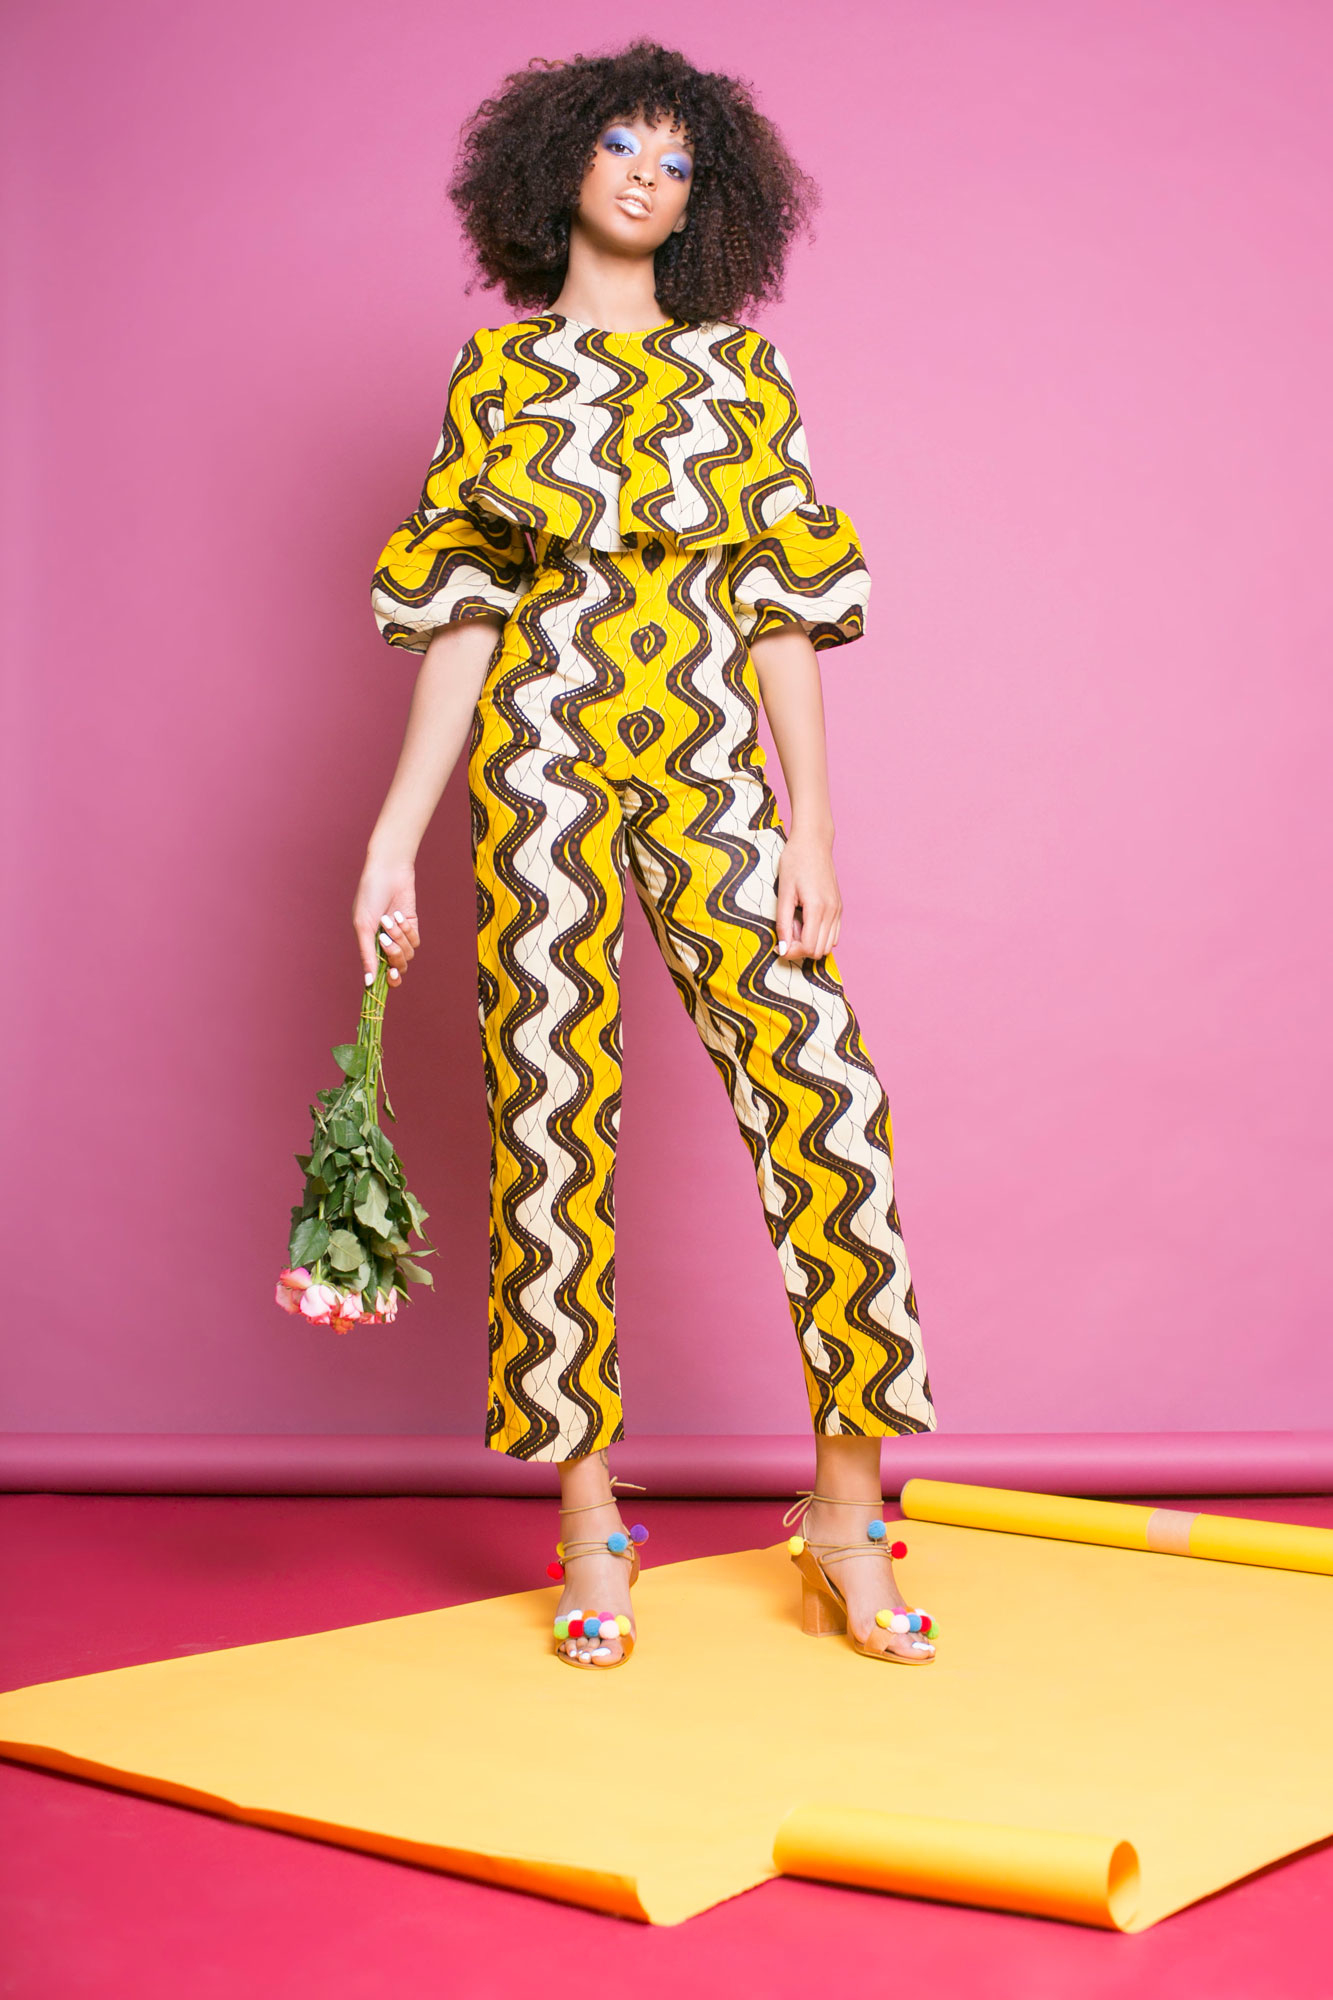 yeni_yellow_jumpsuit_120_185